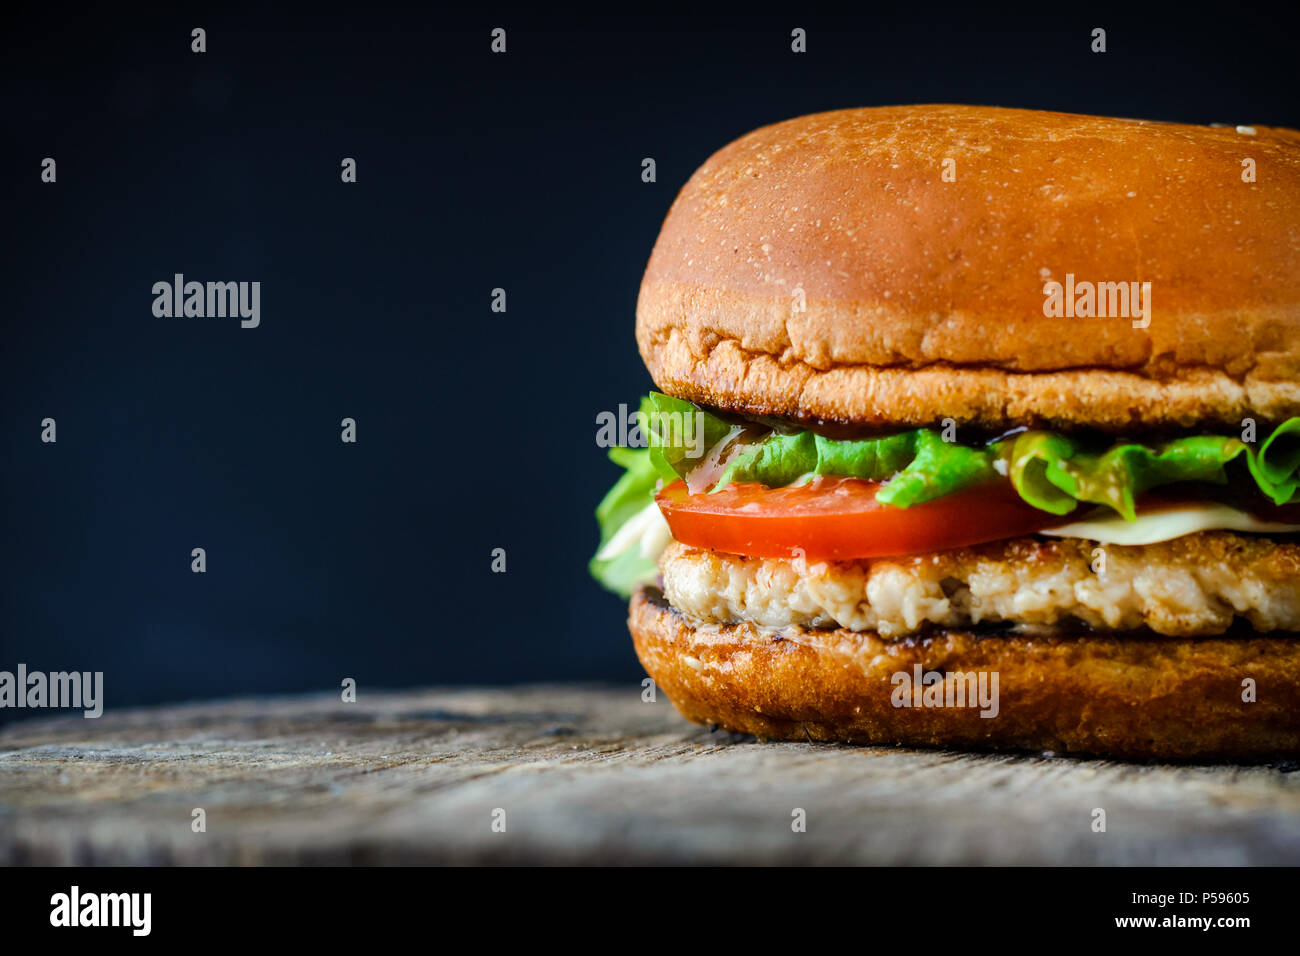 Homemade Appetizing Chickenburger On Dark Background With Copy Space